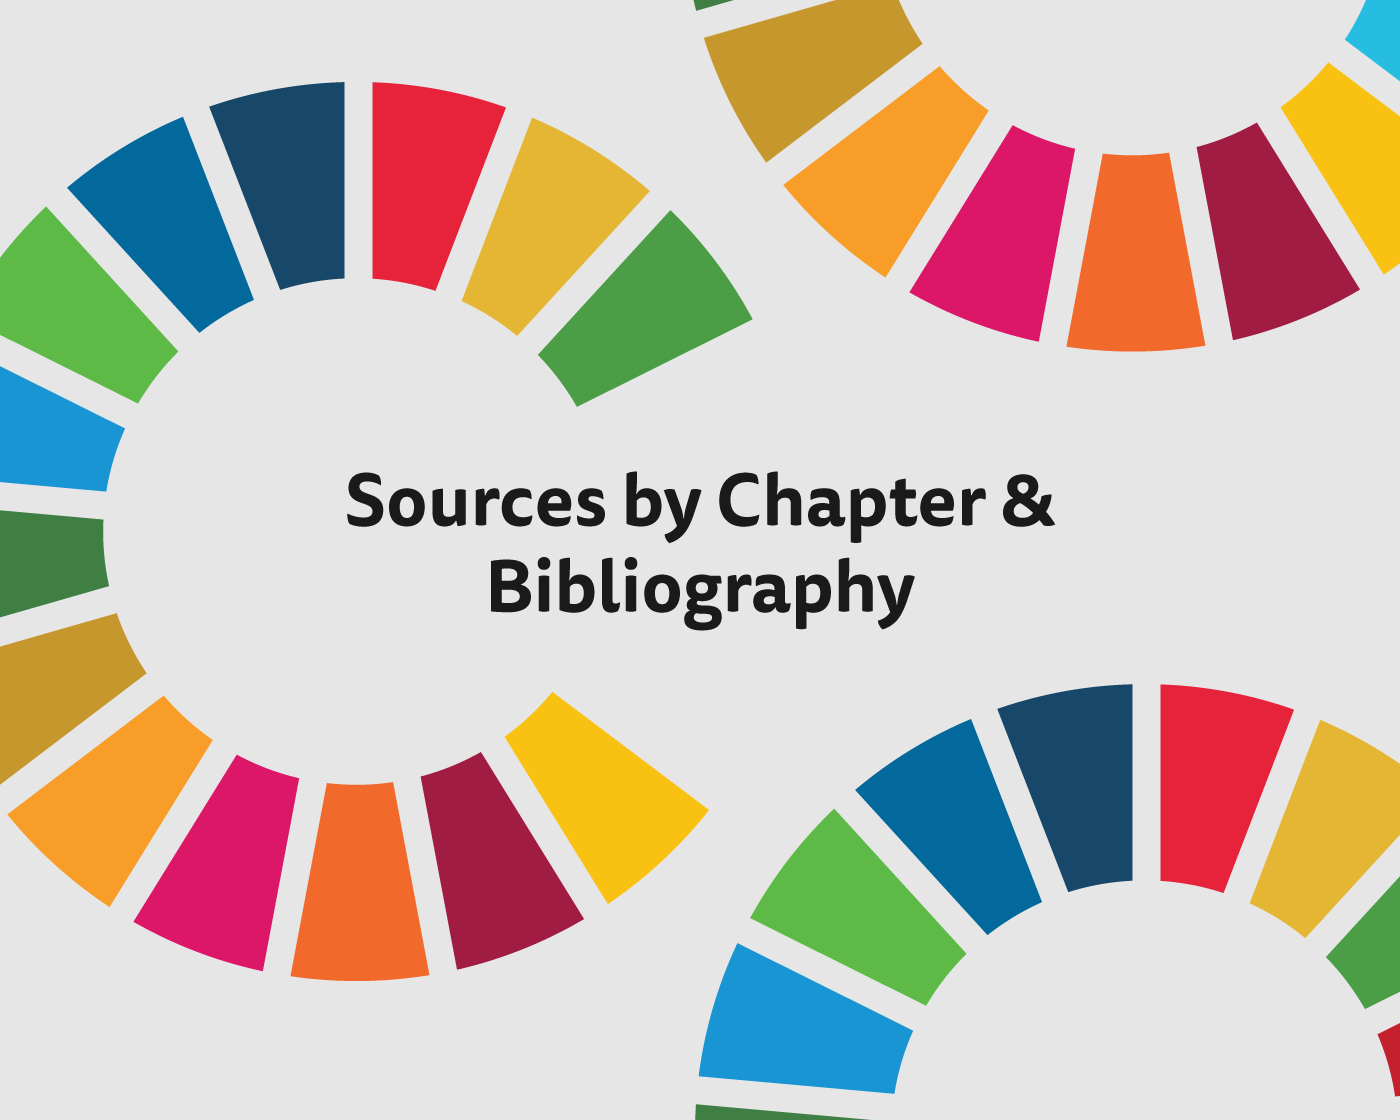 Bibliography clipart excerpt. Sources by chapter sdg